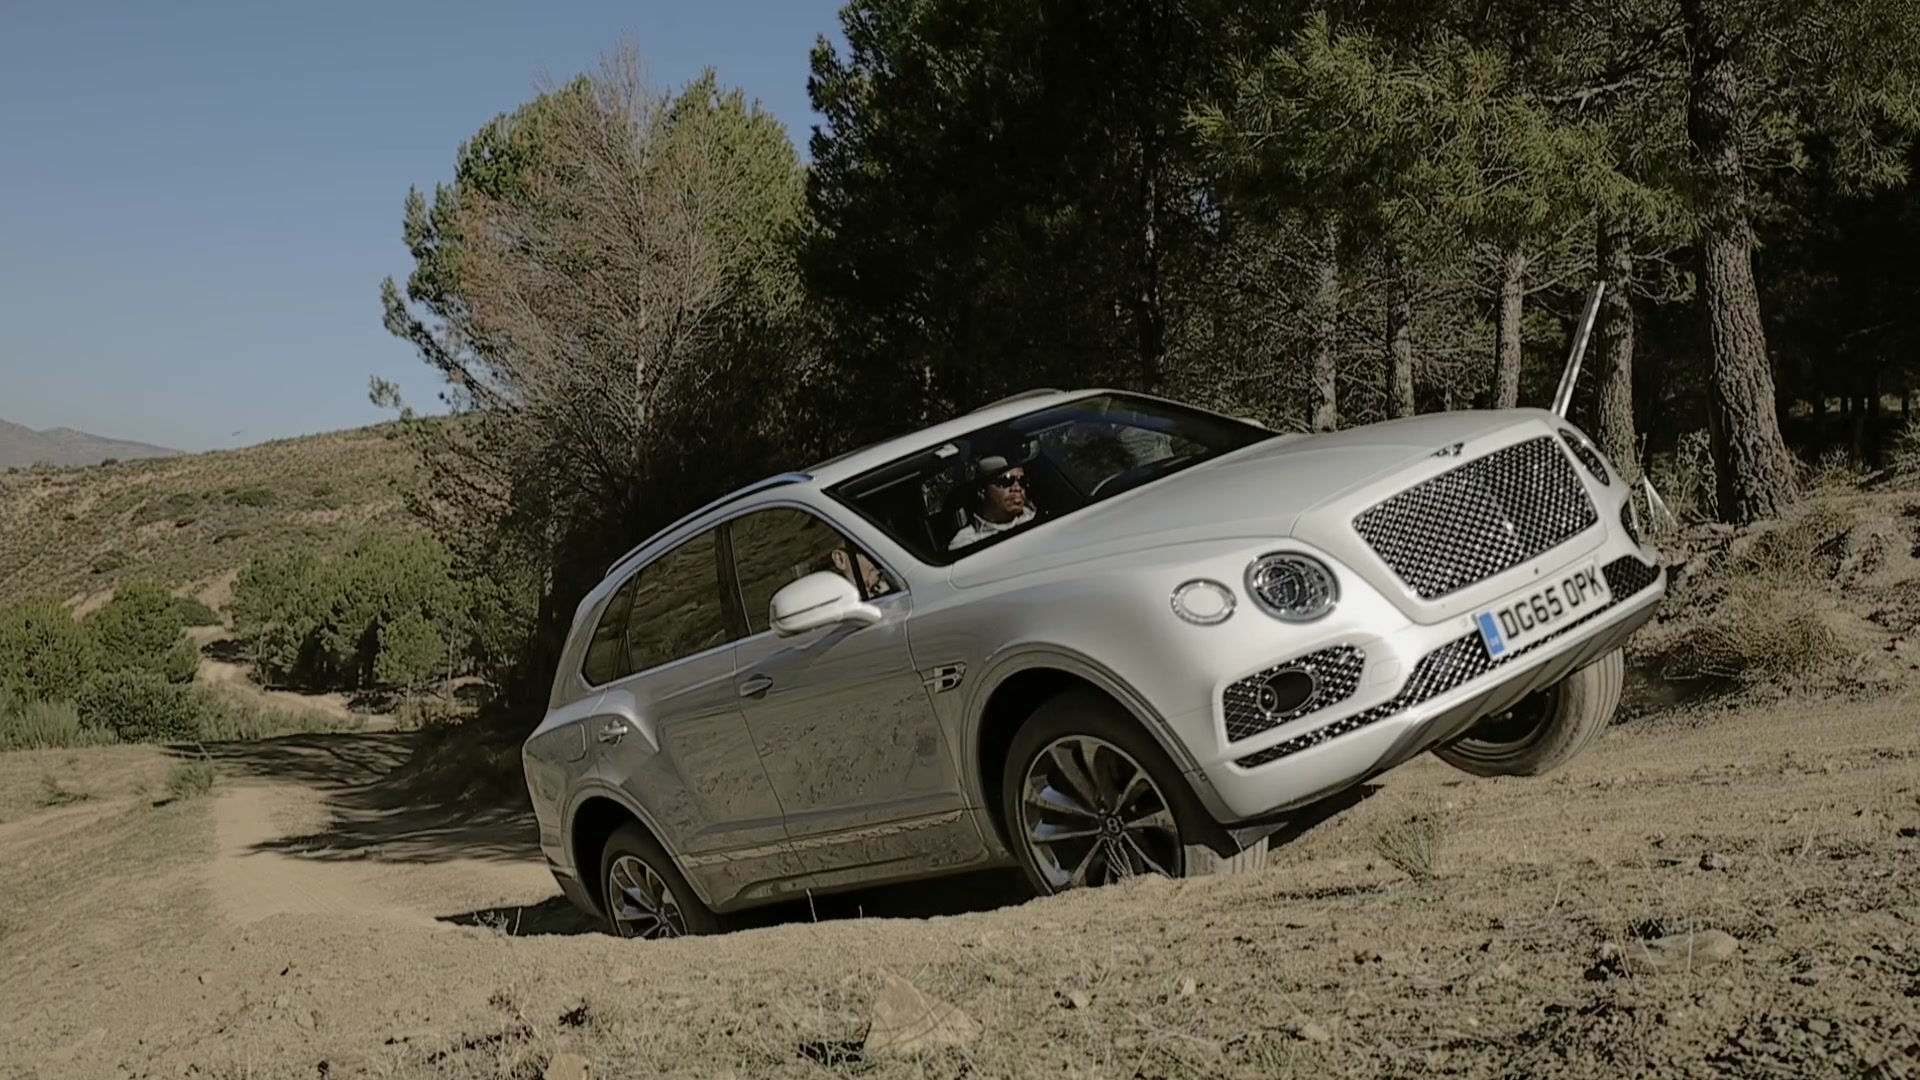 2016 Bentley Bentayga Off-Road | Autoblog Short Cuts